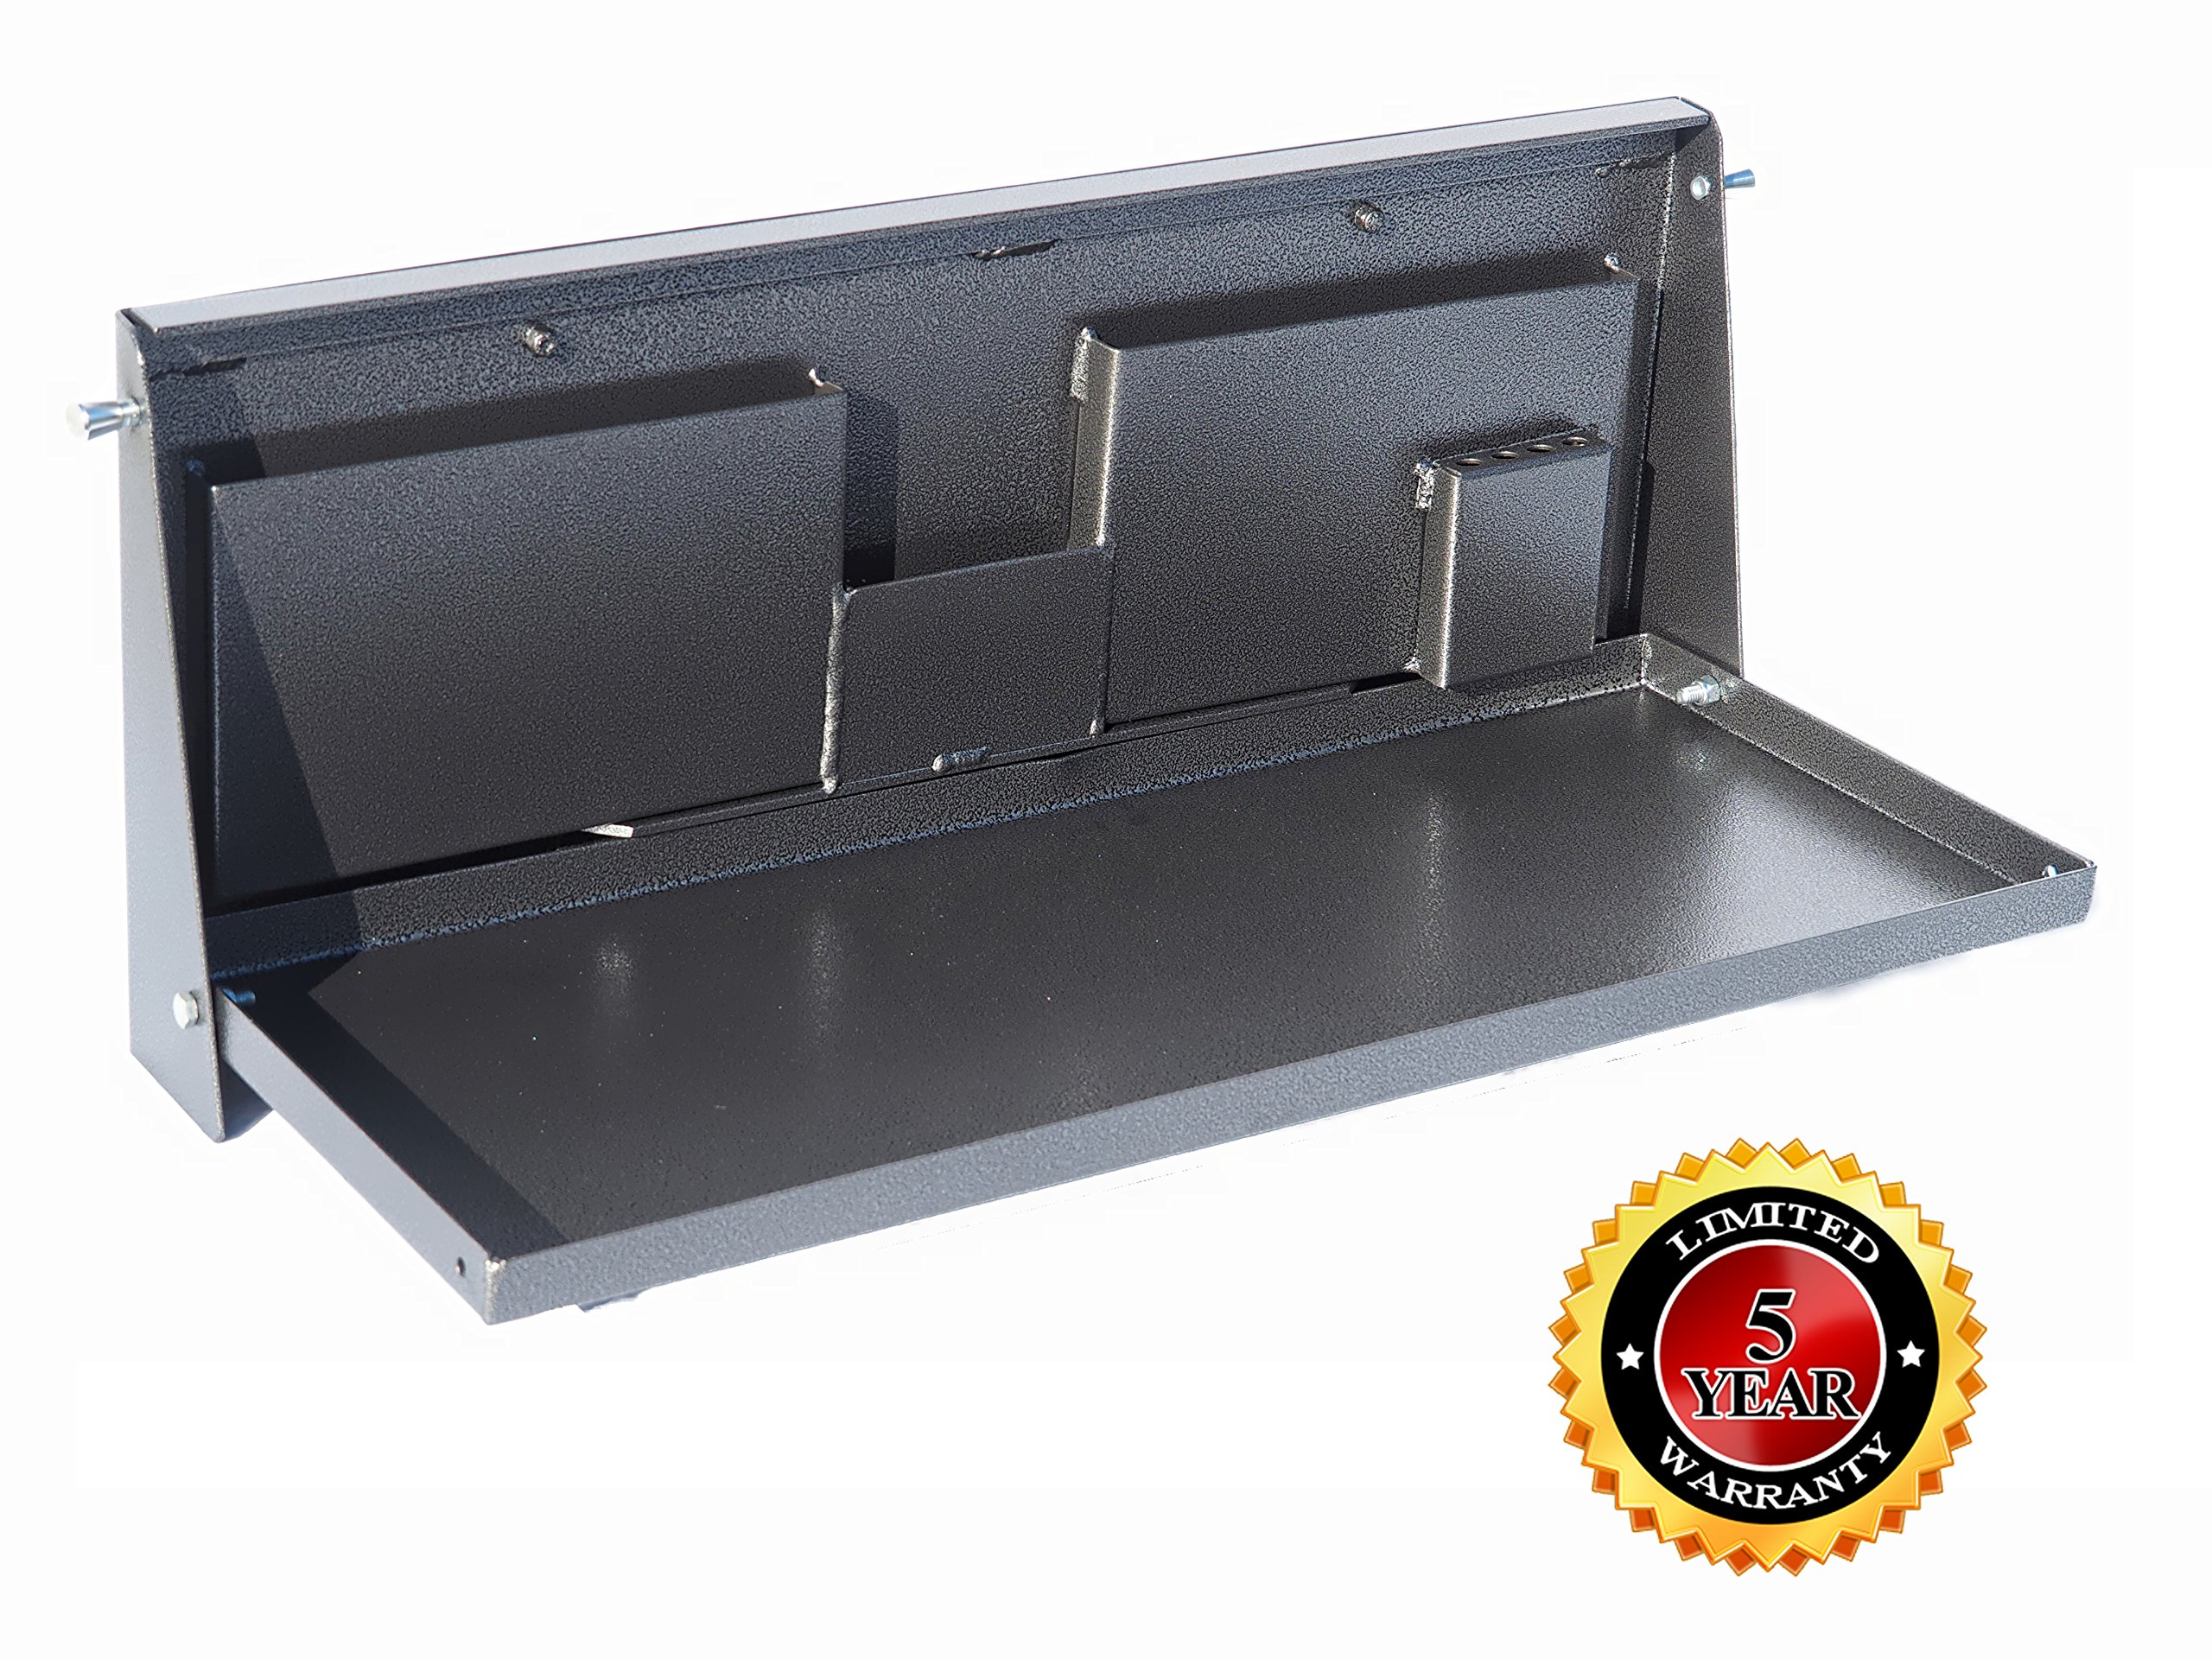 Fold Down Shelf- Work Station MADE IN THE USA! by Plattinum Products